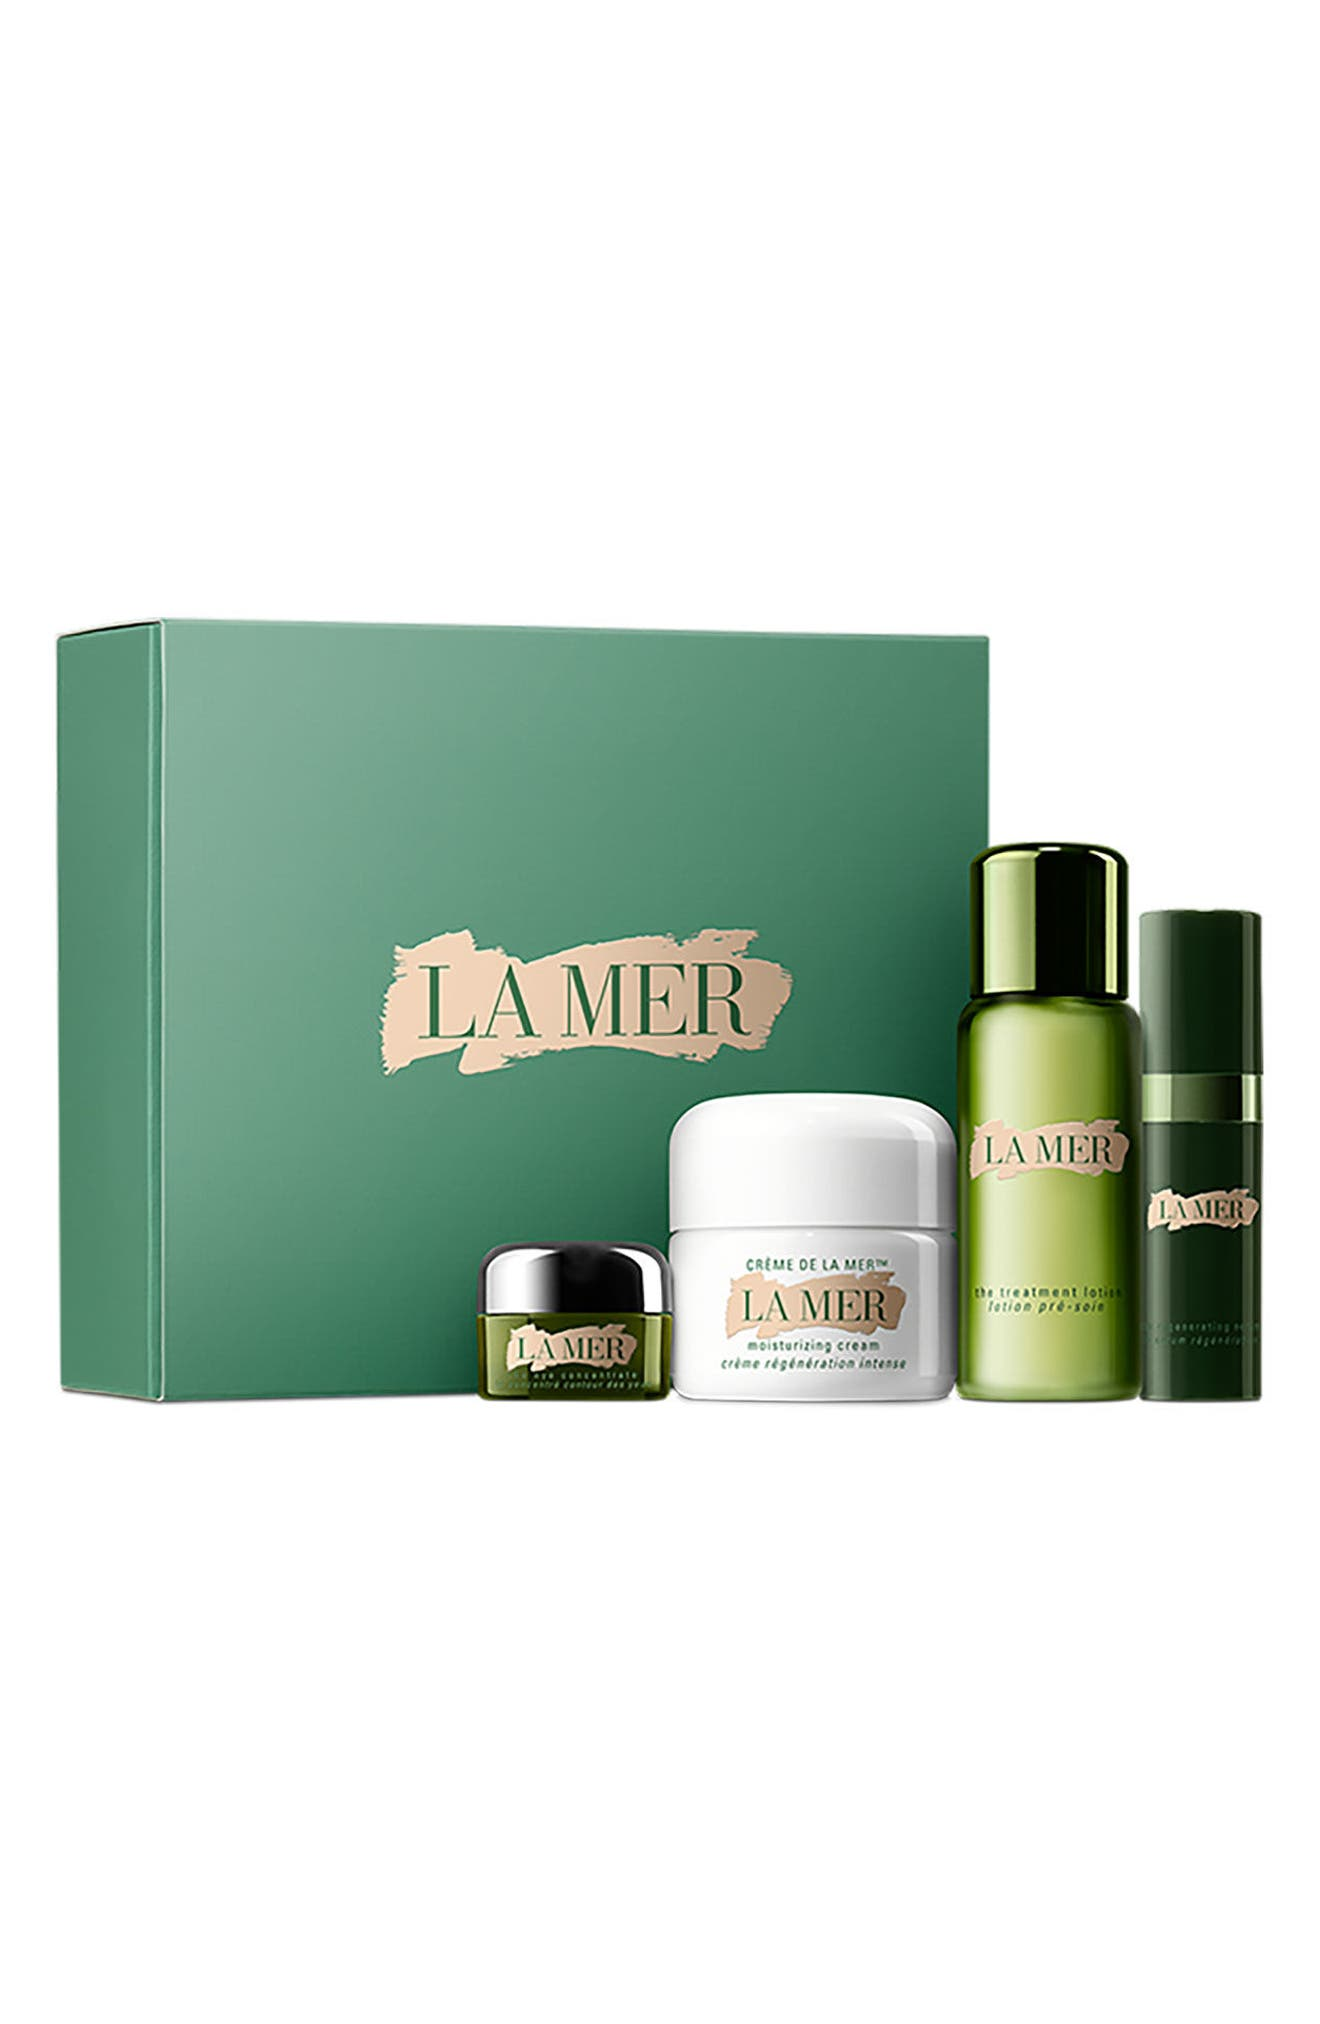 La Mer Introductory Collection ($208 Value)